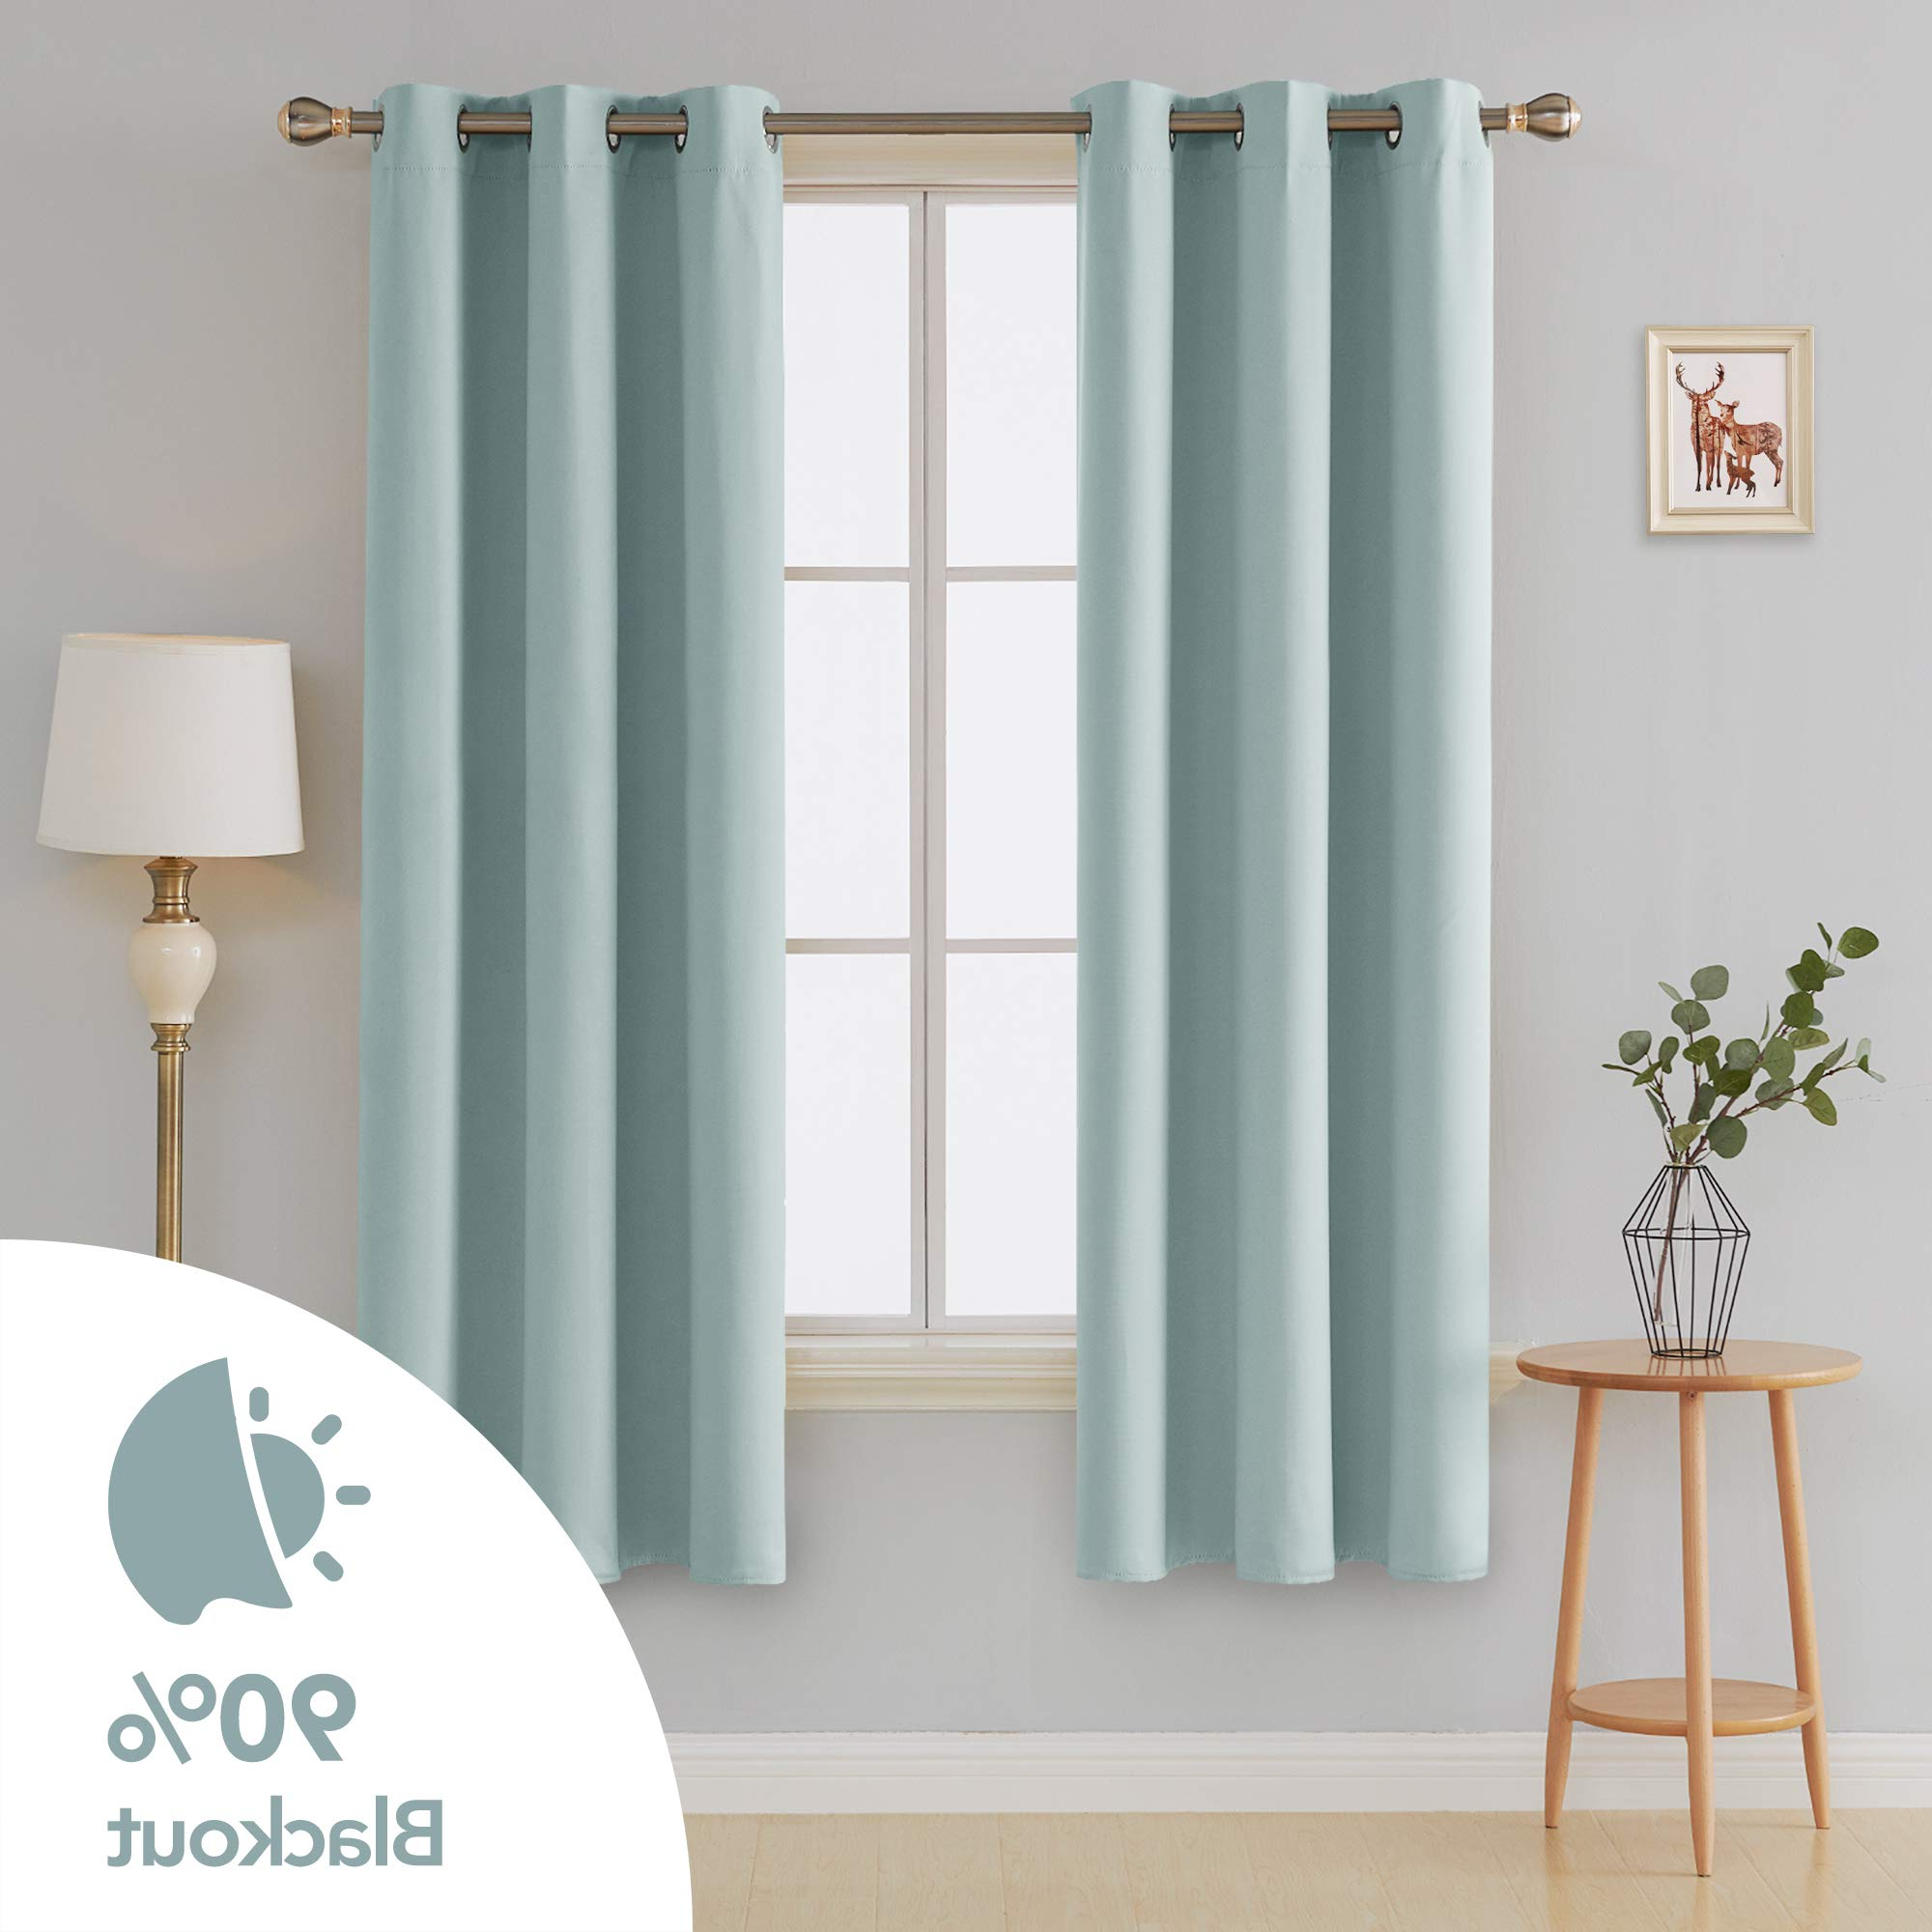 Most Current Deconovo Room Darkening Thermal Insulated Blackout Grommet Window Curtain Panel For Bedroom Room Skyblue 42x84 Inch 1 Pair Inside Insulated Blackout Grommet Window Curtain Panel Pairs (View 13 of 20)